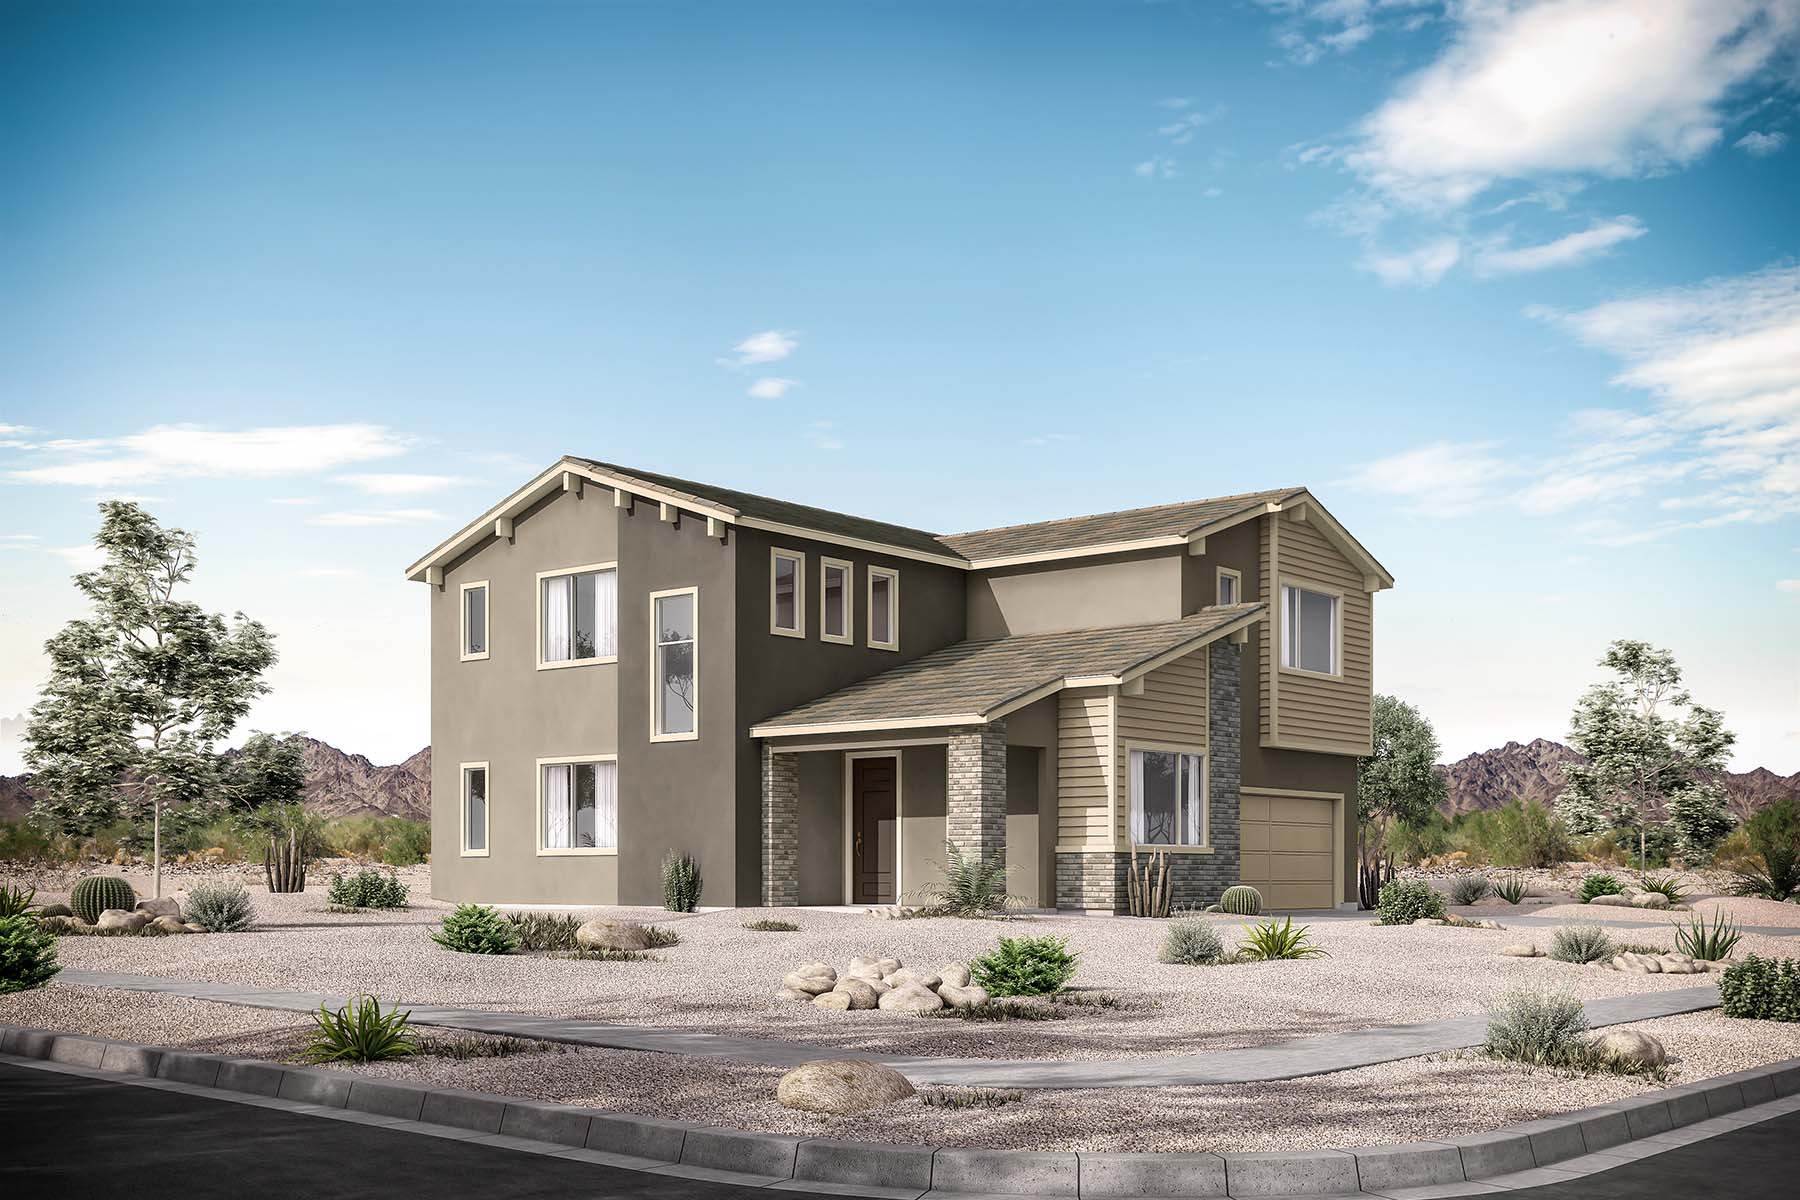 Tisdale Plan  at Roosevelt Park in Avondale Arizona by Mattamy Homes